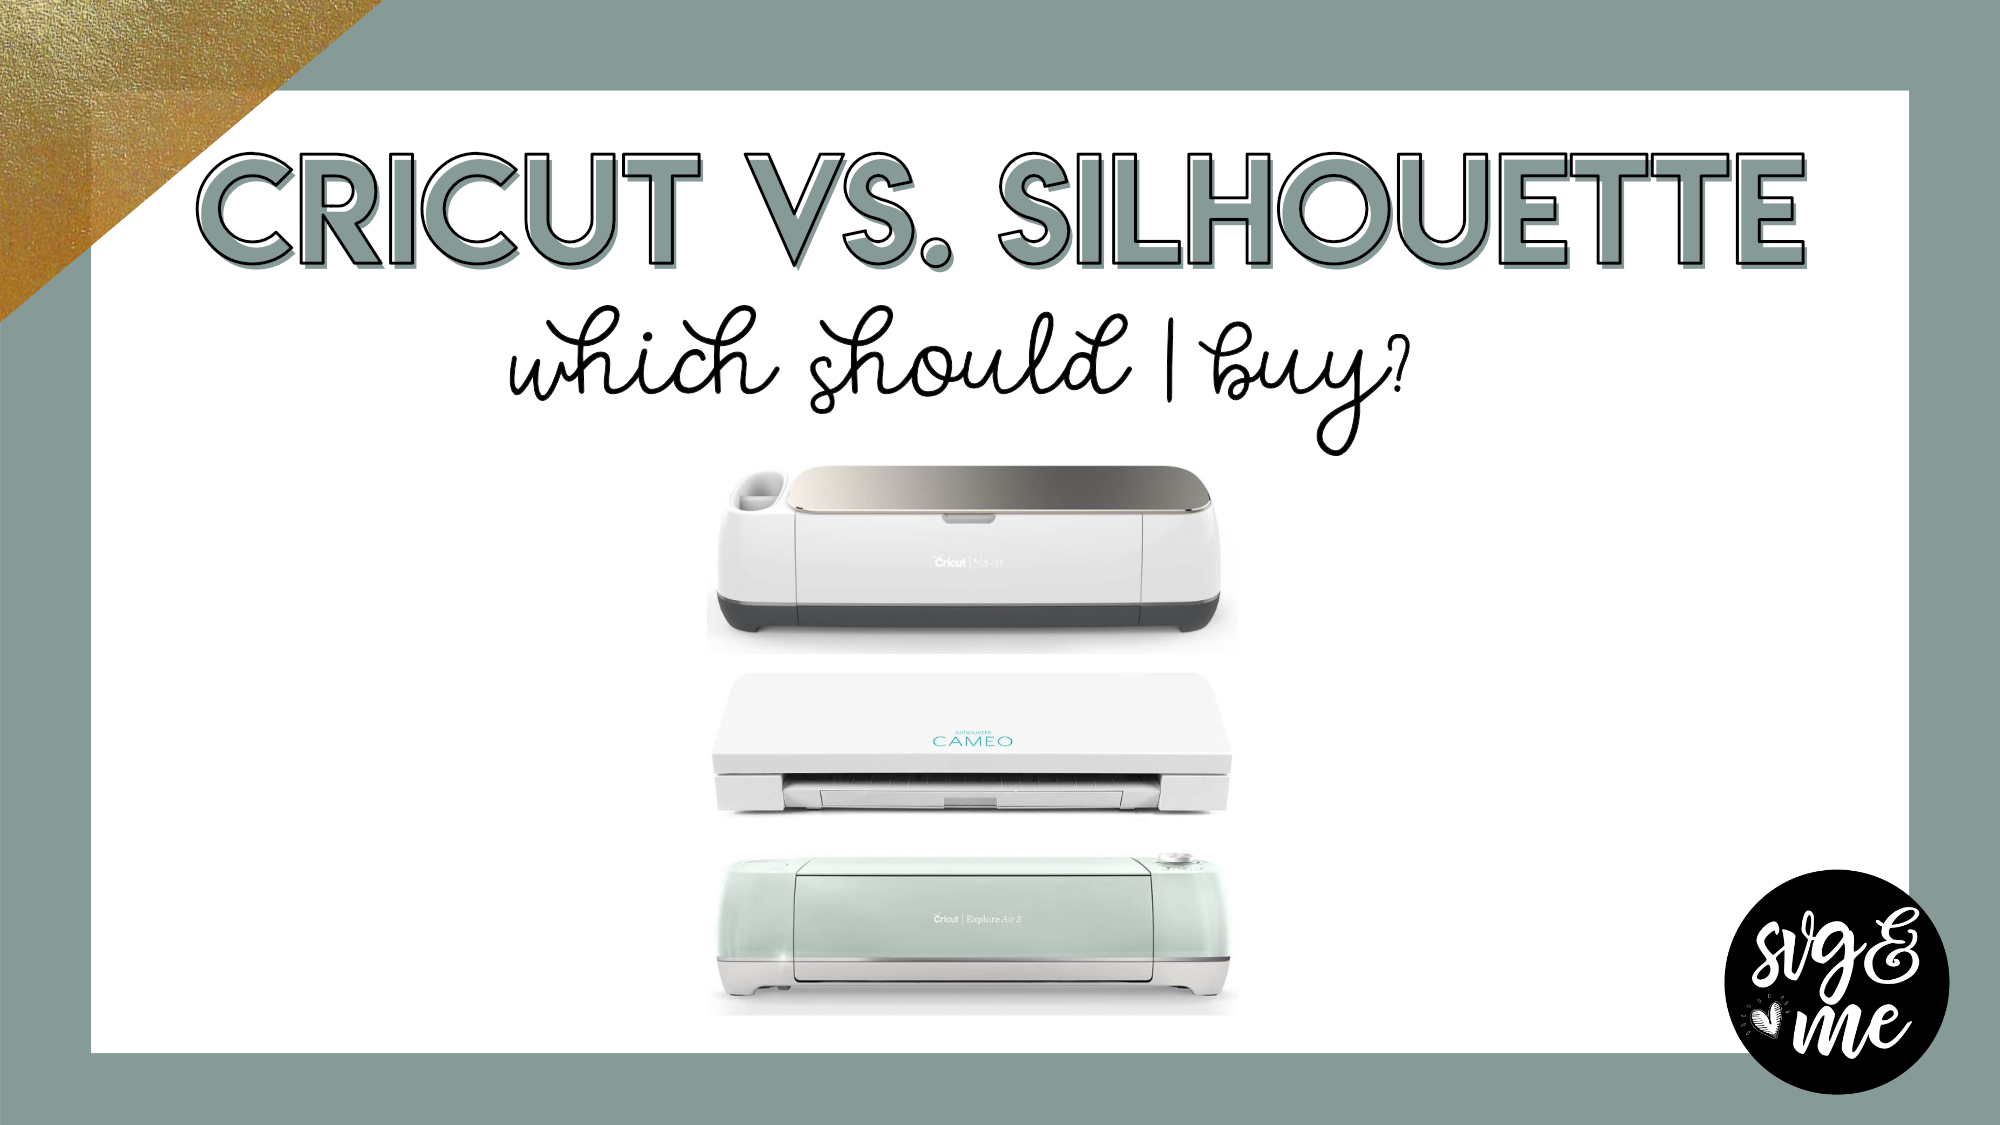 Cricut vs. Silhouette Review: Which Should I Buy? - SVG & Me